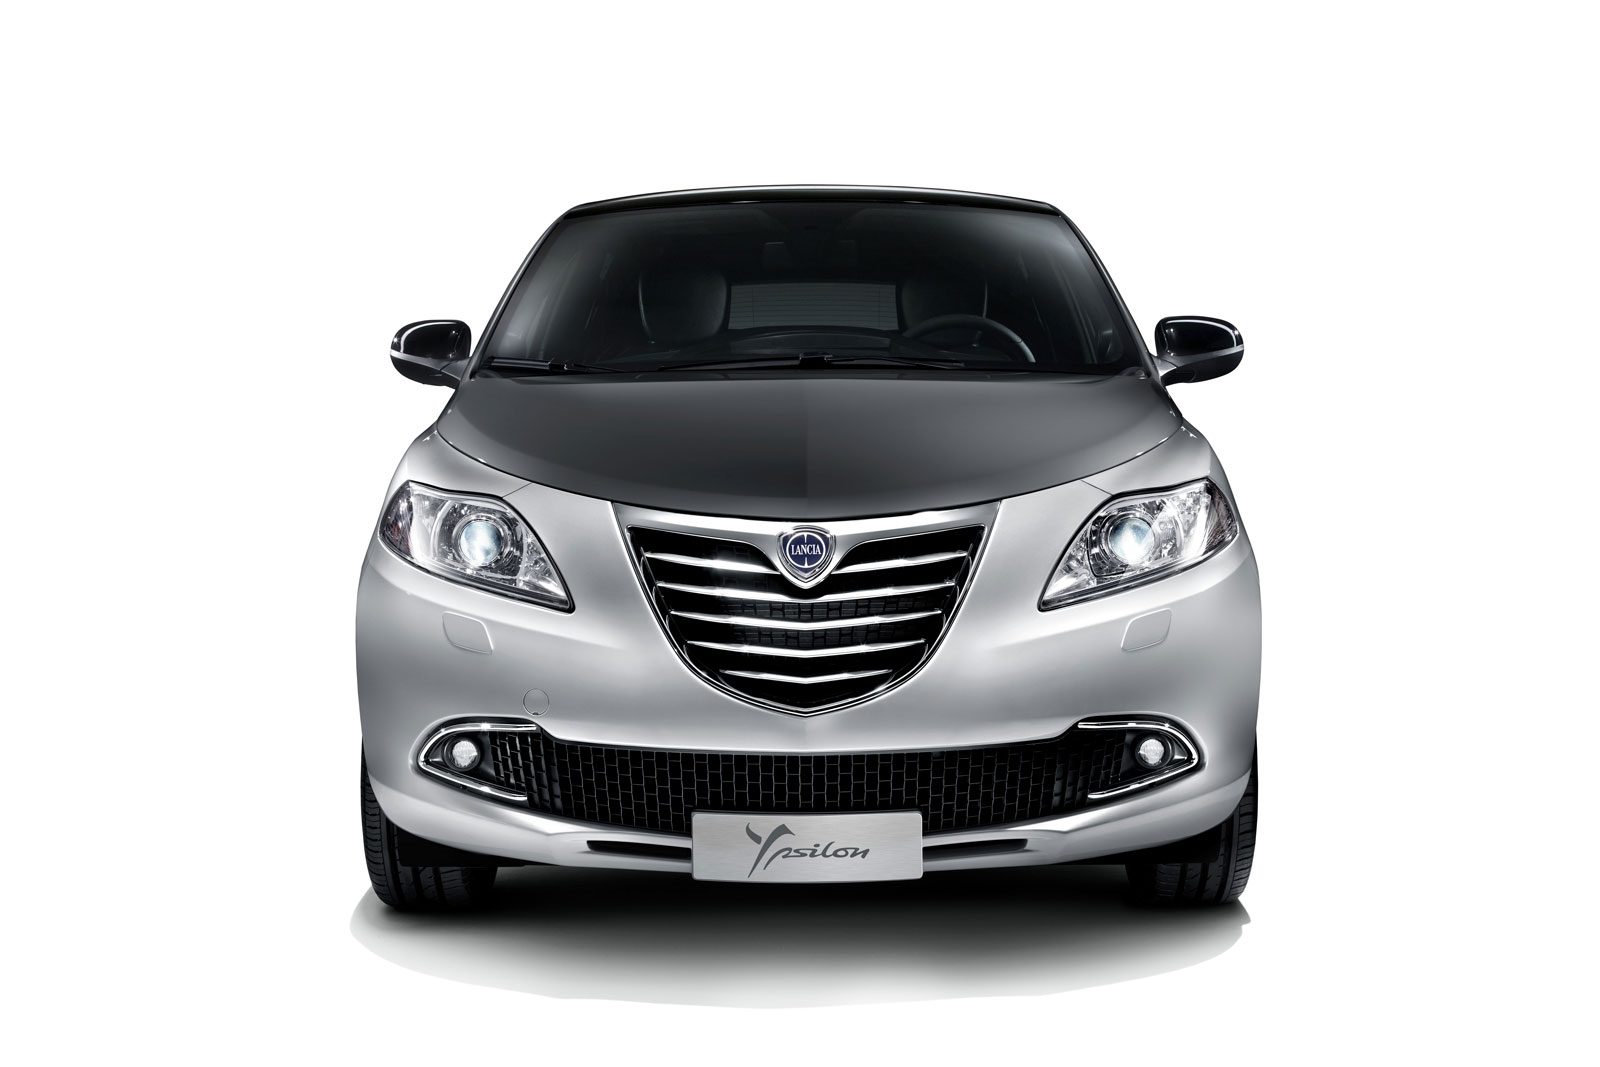 lancia ypsilon variant with excellent features. Black Bedroom Furniture Sets. Home Design Ideas